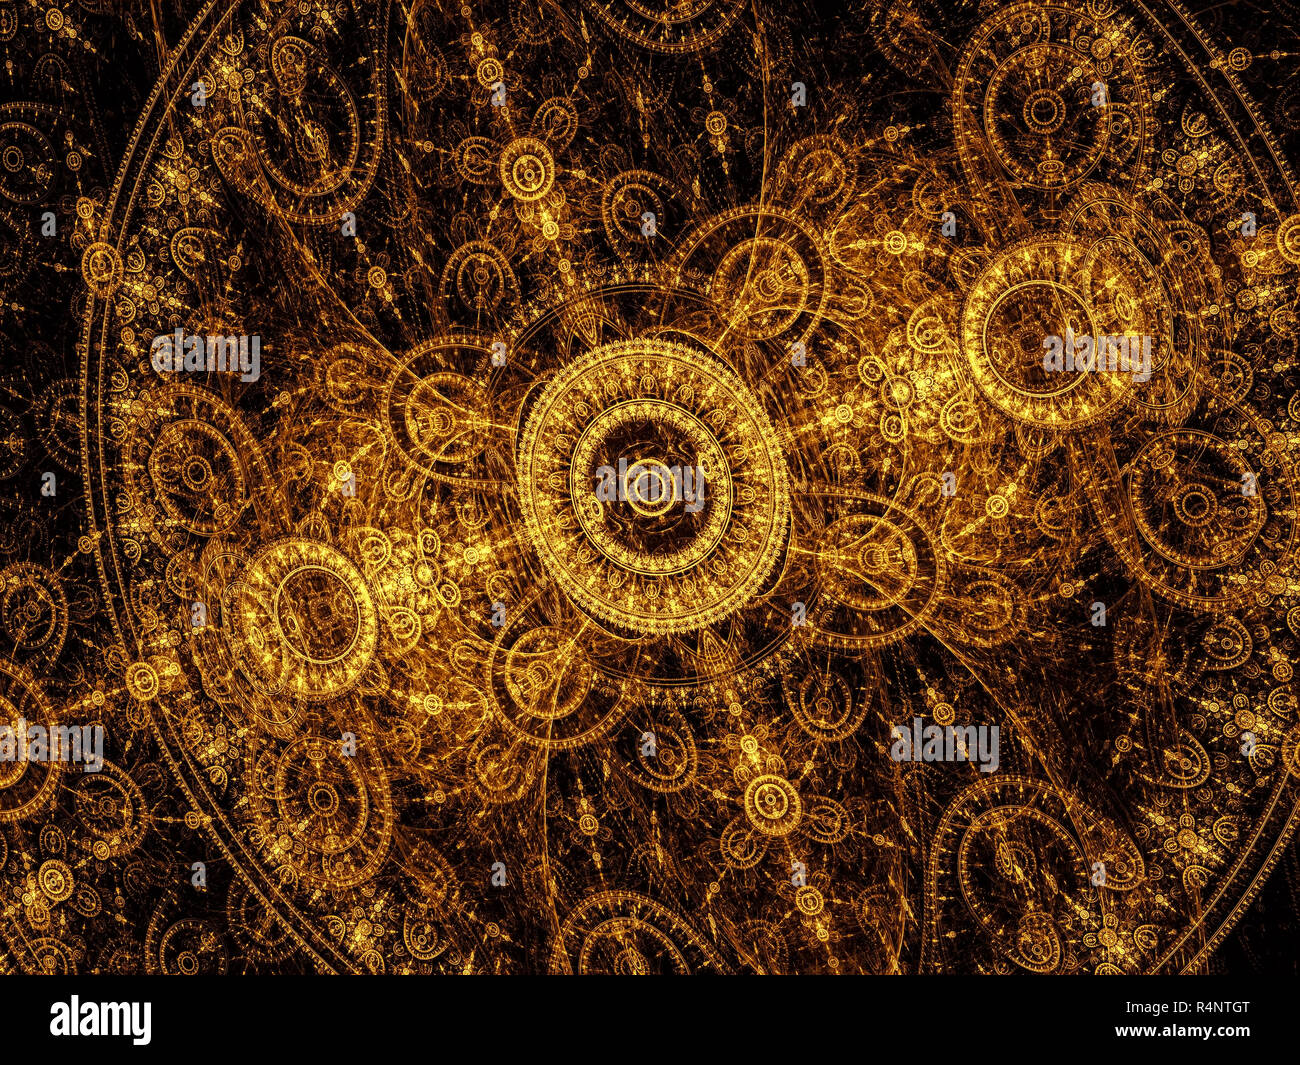 Abstract Golden Pattern Of Circles And Curves Like A